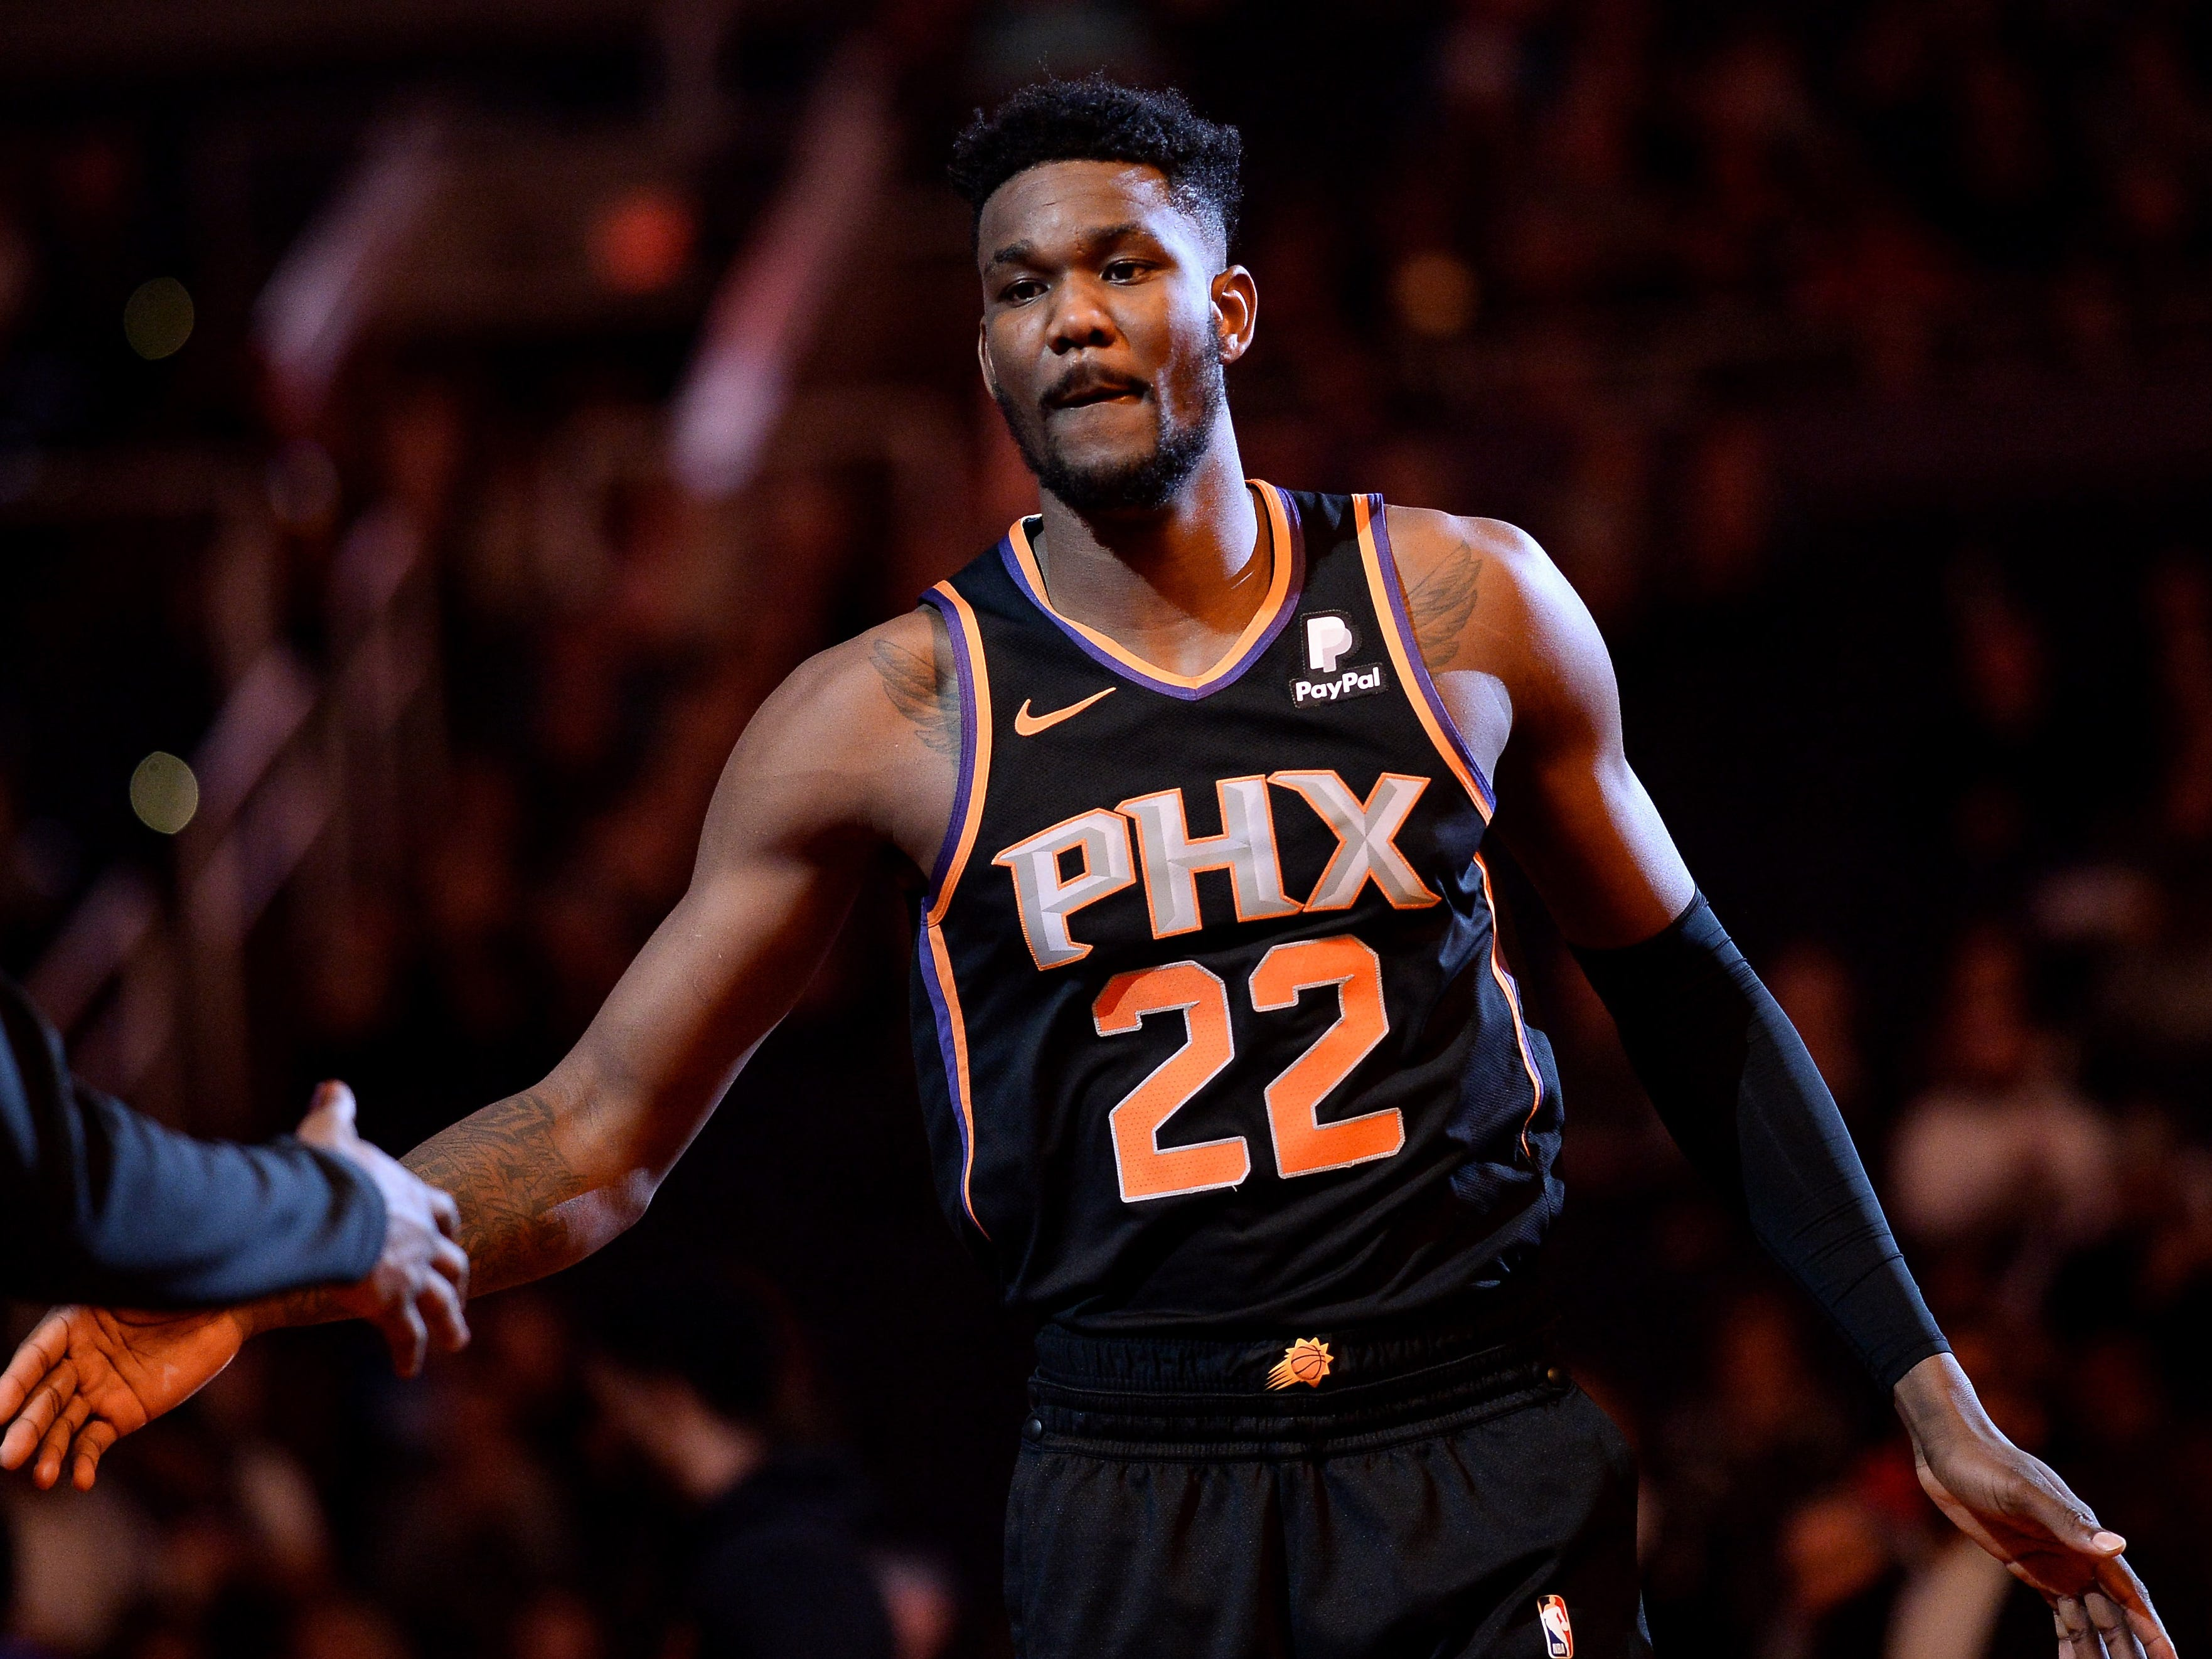 Jan 4, 2019; Phoenix, AZ, USA; Phoenix Suns center Deandre Ayton (22) is announced for the game against the LA Clippers at Talking Stick Resort Arena. Mandatory Credit: Jennifer Stewart-USA TODAY Sports